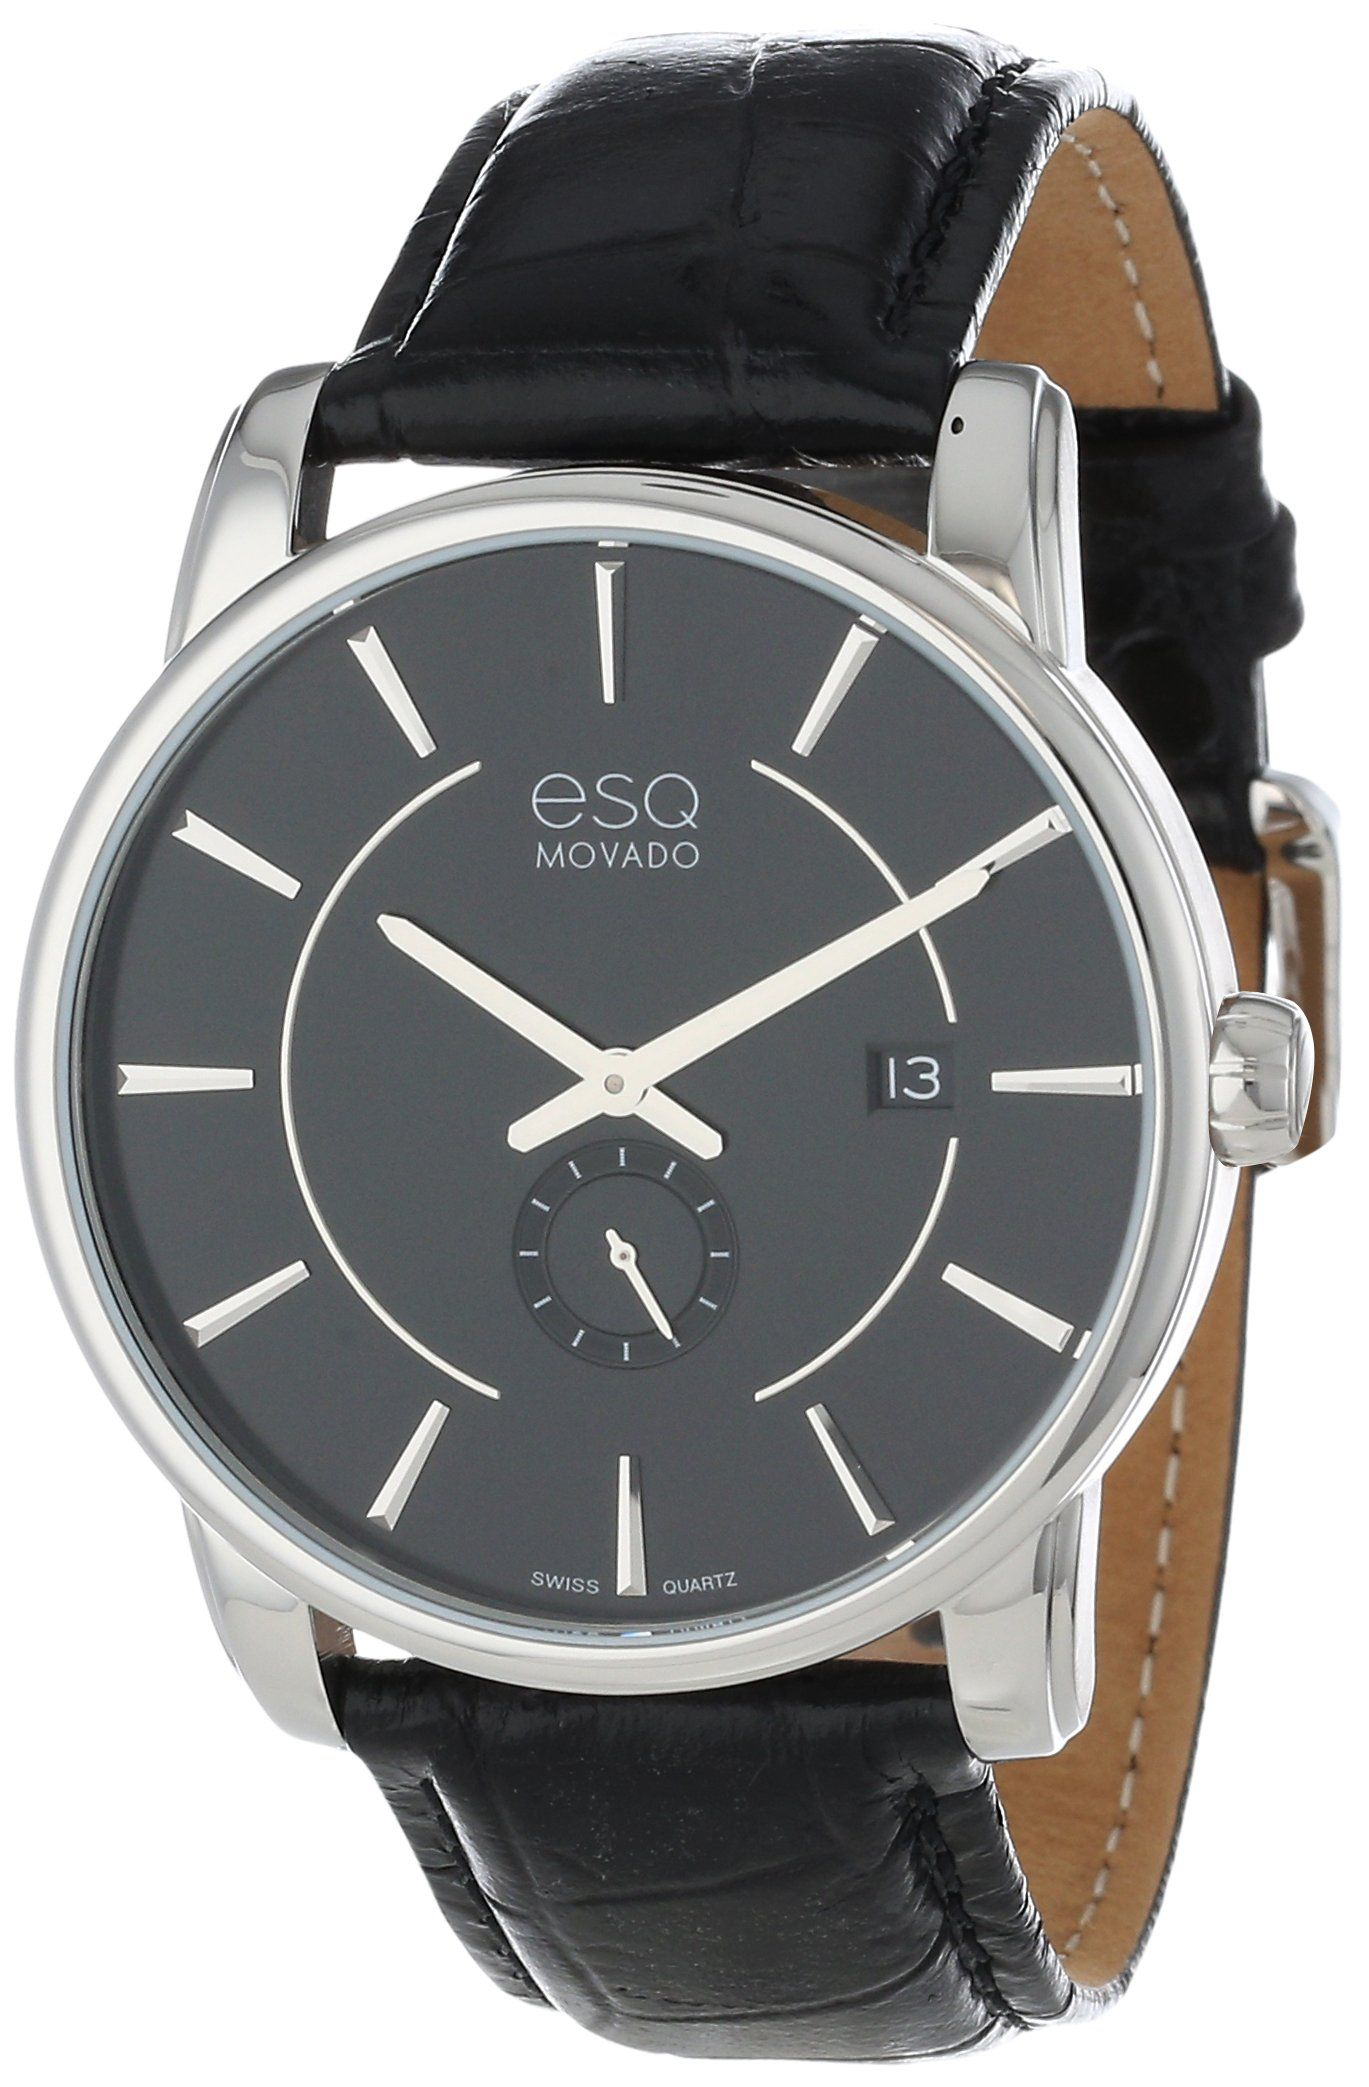 free steel overstock s shipping mens chronograph esq men watches today movado by stainless watch jewelry product catalyst